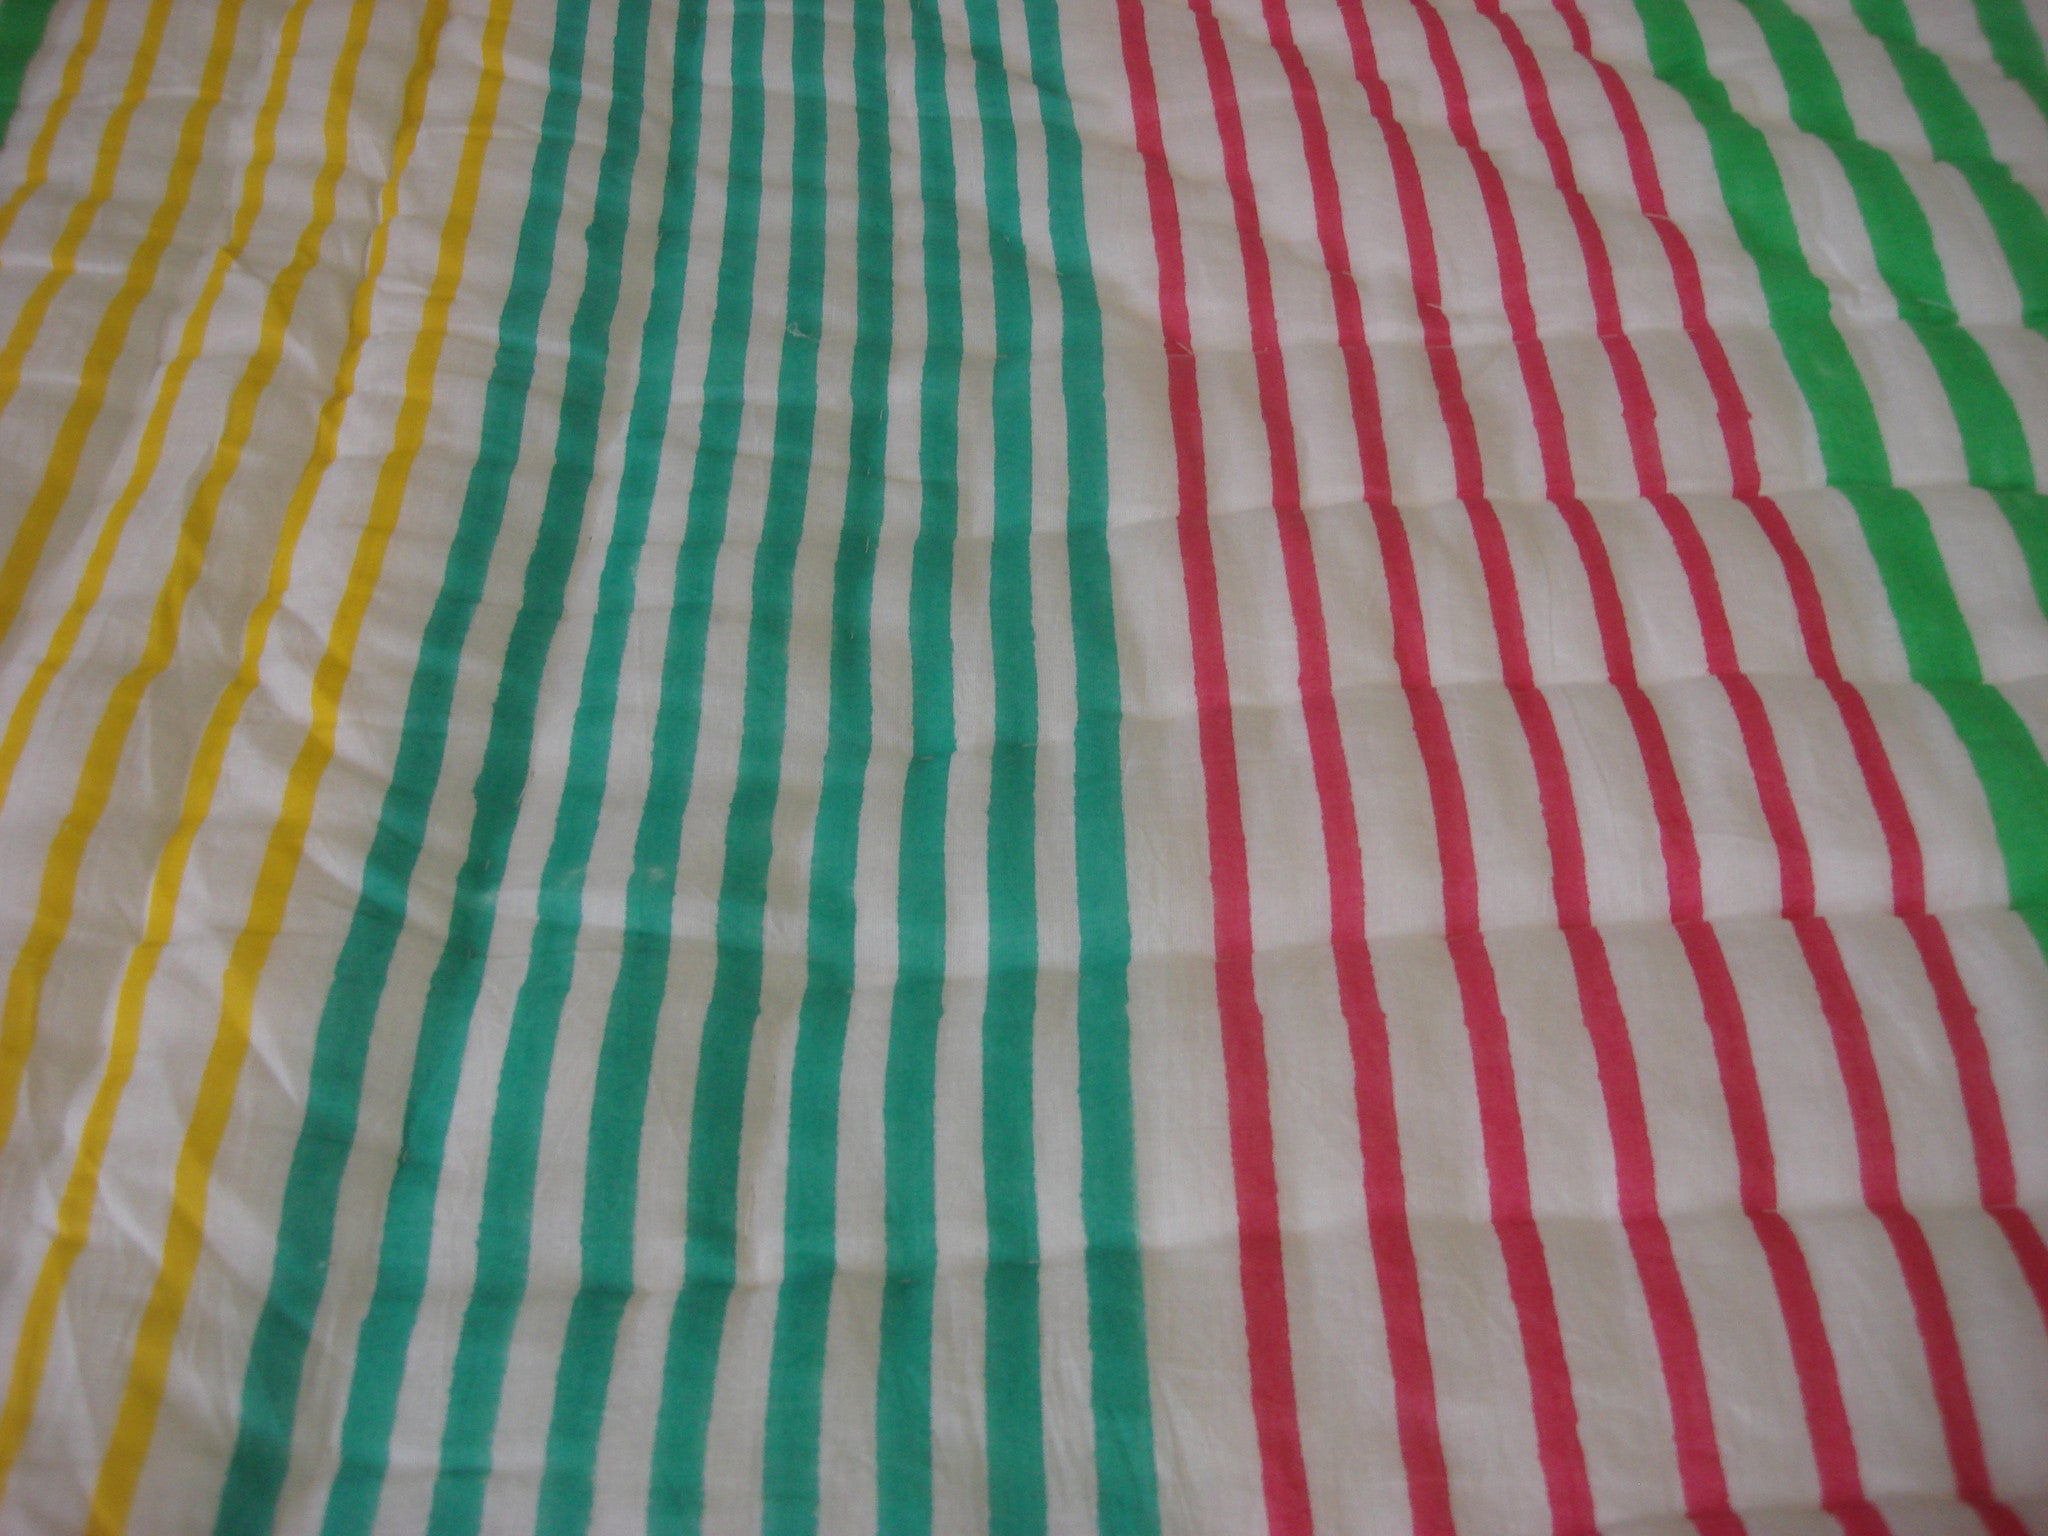 QBP 170 -100% Handmade Cotton Queen Quilt - Orange and multi colored stripes - Pentagon Crafts